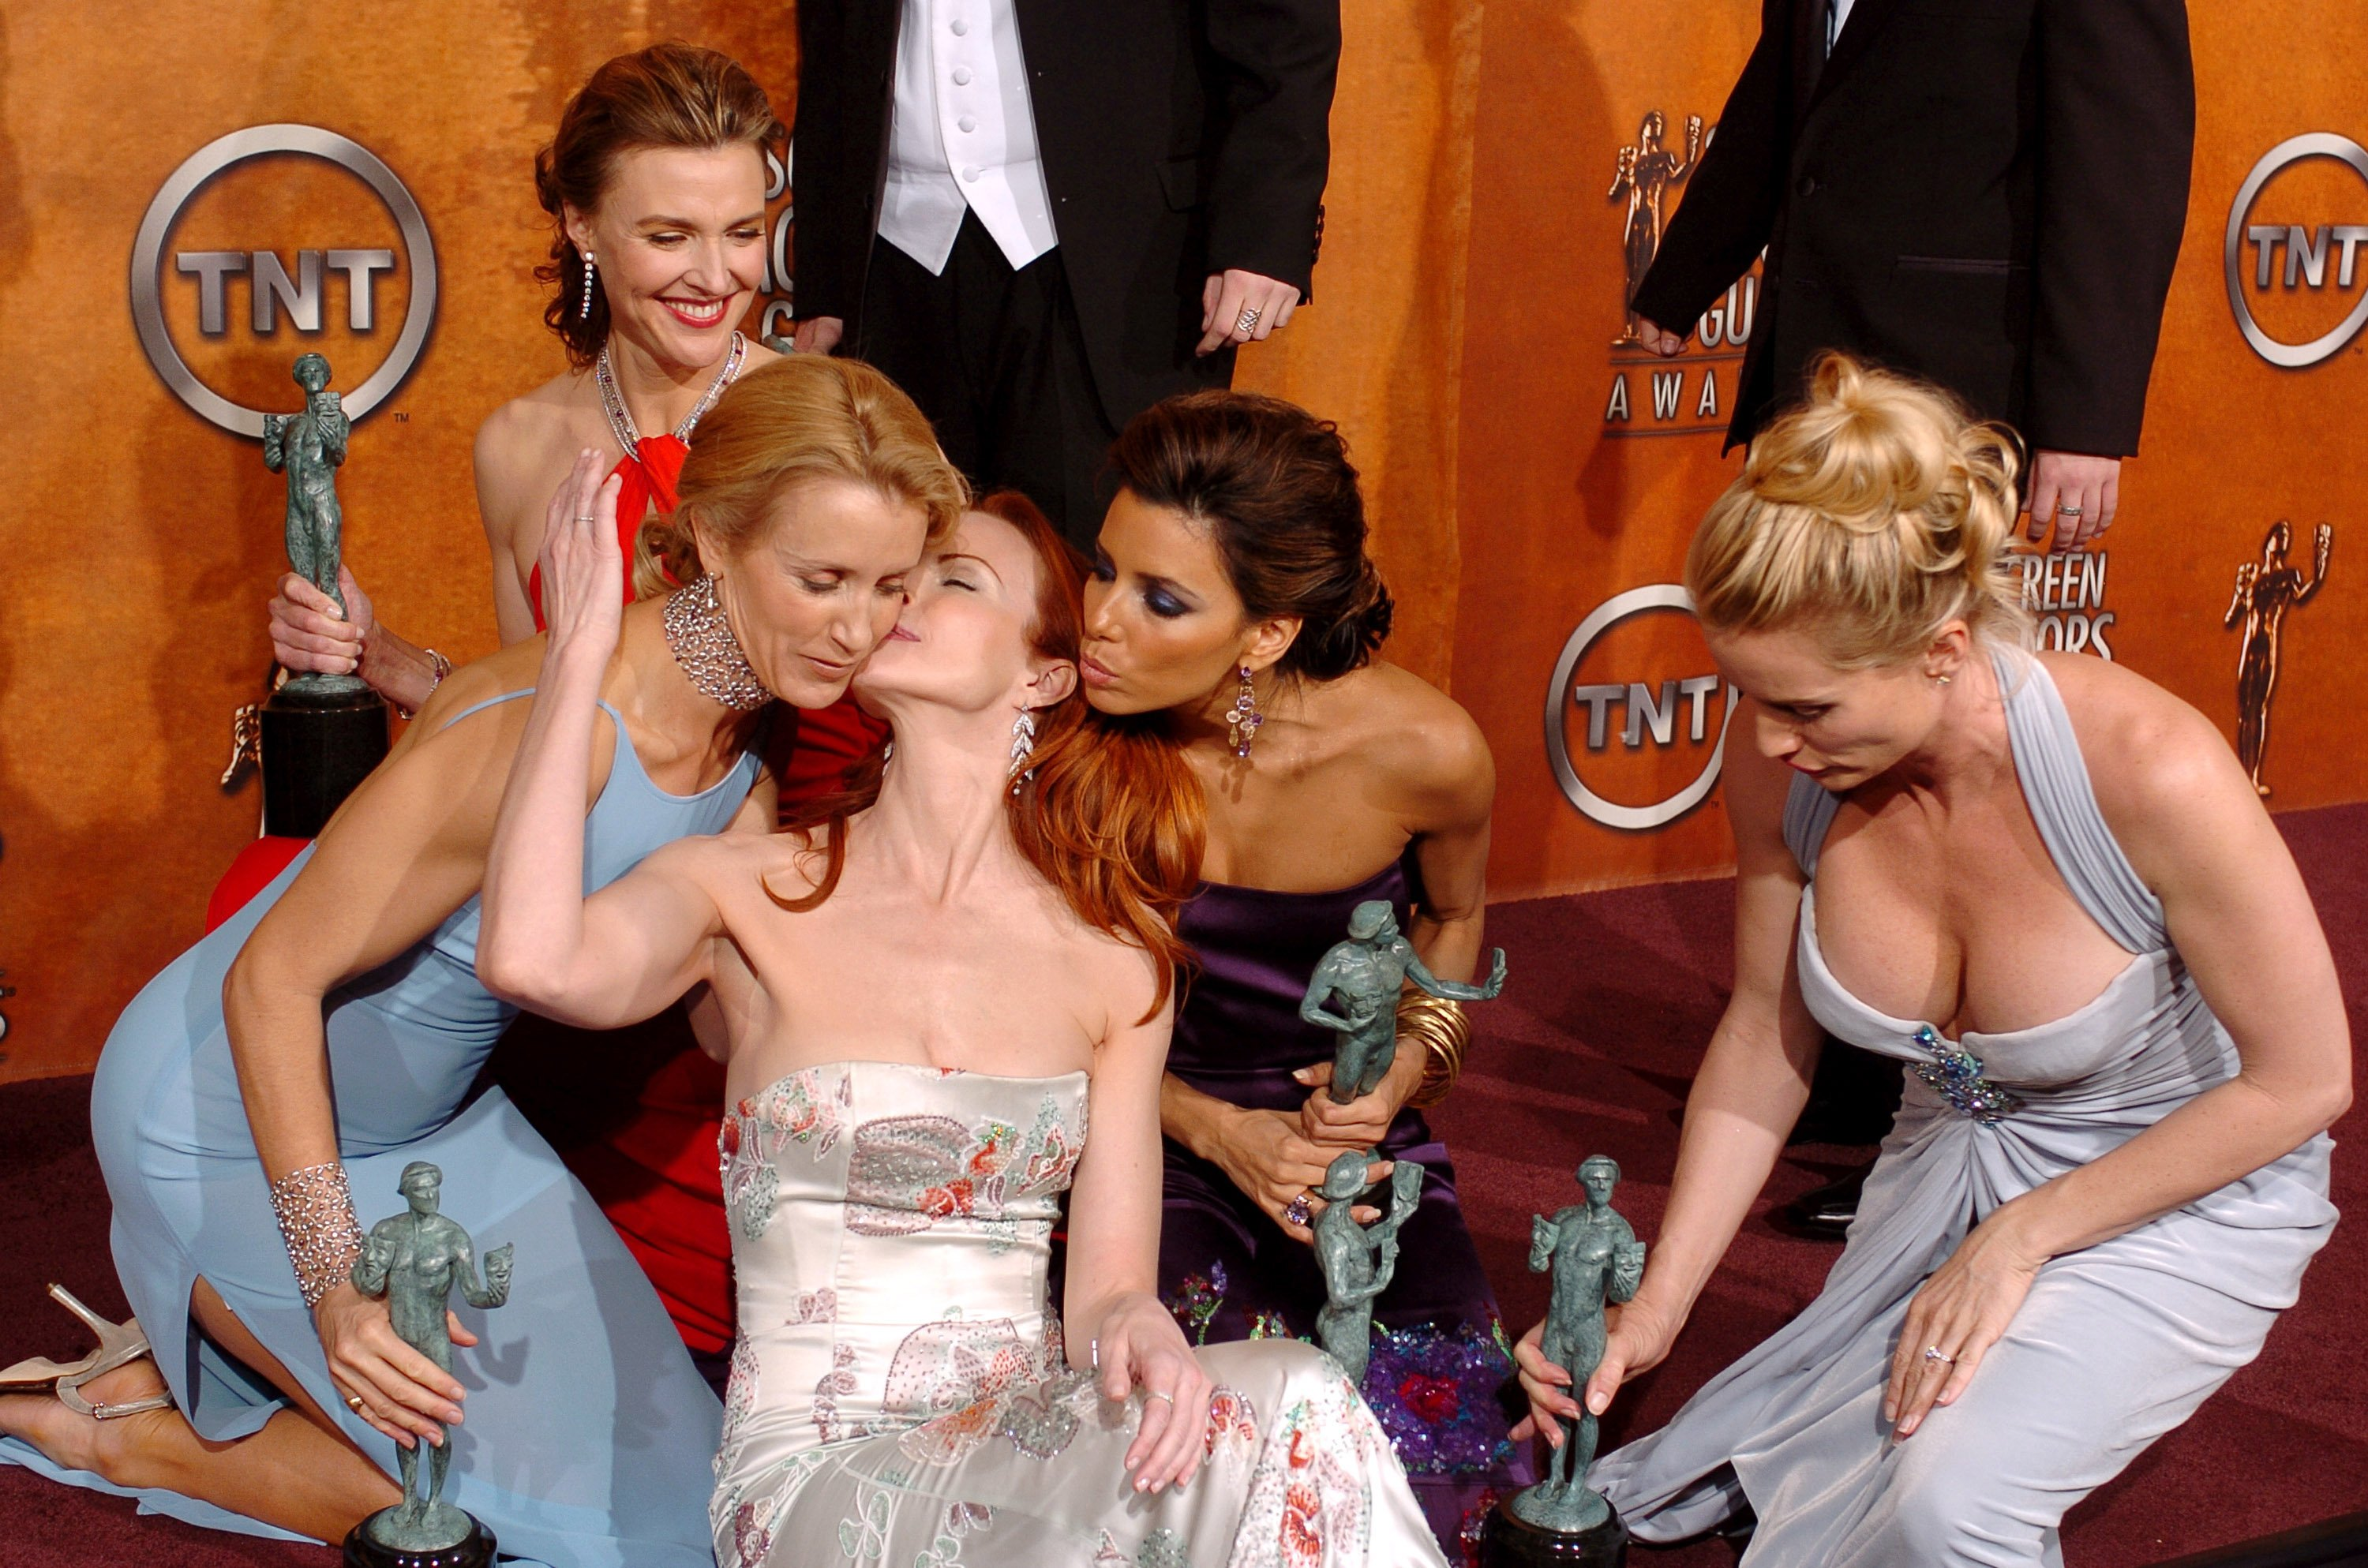 Felicity Huffman, Brenda Strong, Marcia Cross, Eva Longoria and Nicollette Sheridan pose together after winning the SAG Award for Outstanding Ensemble in a Comedy Series at the SAG Awards in 2005 | Photo: Getty Images